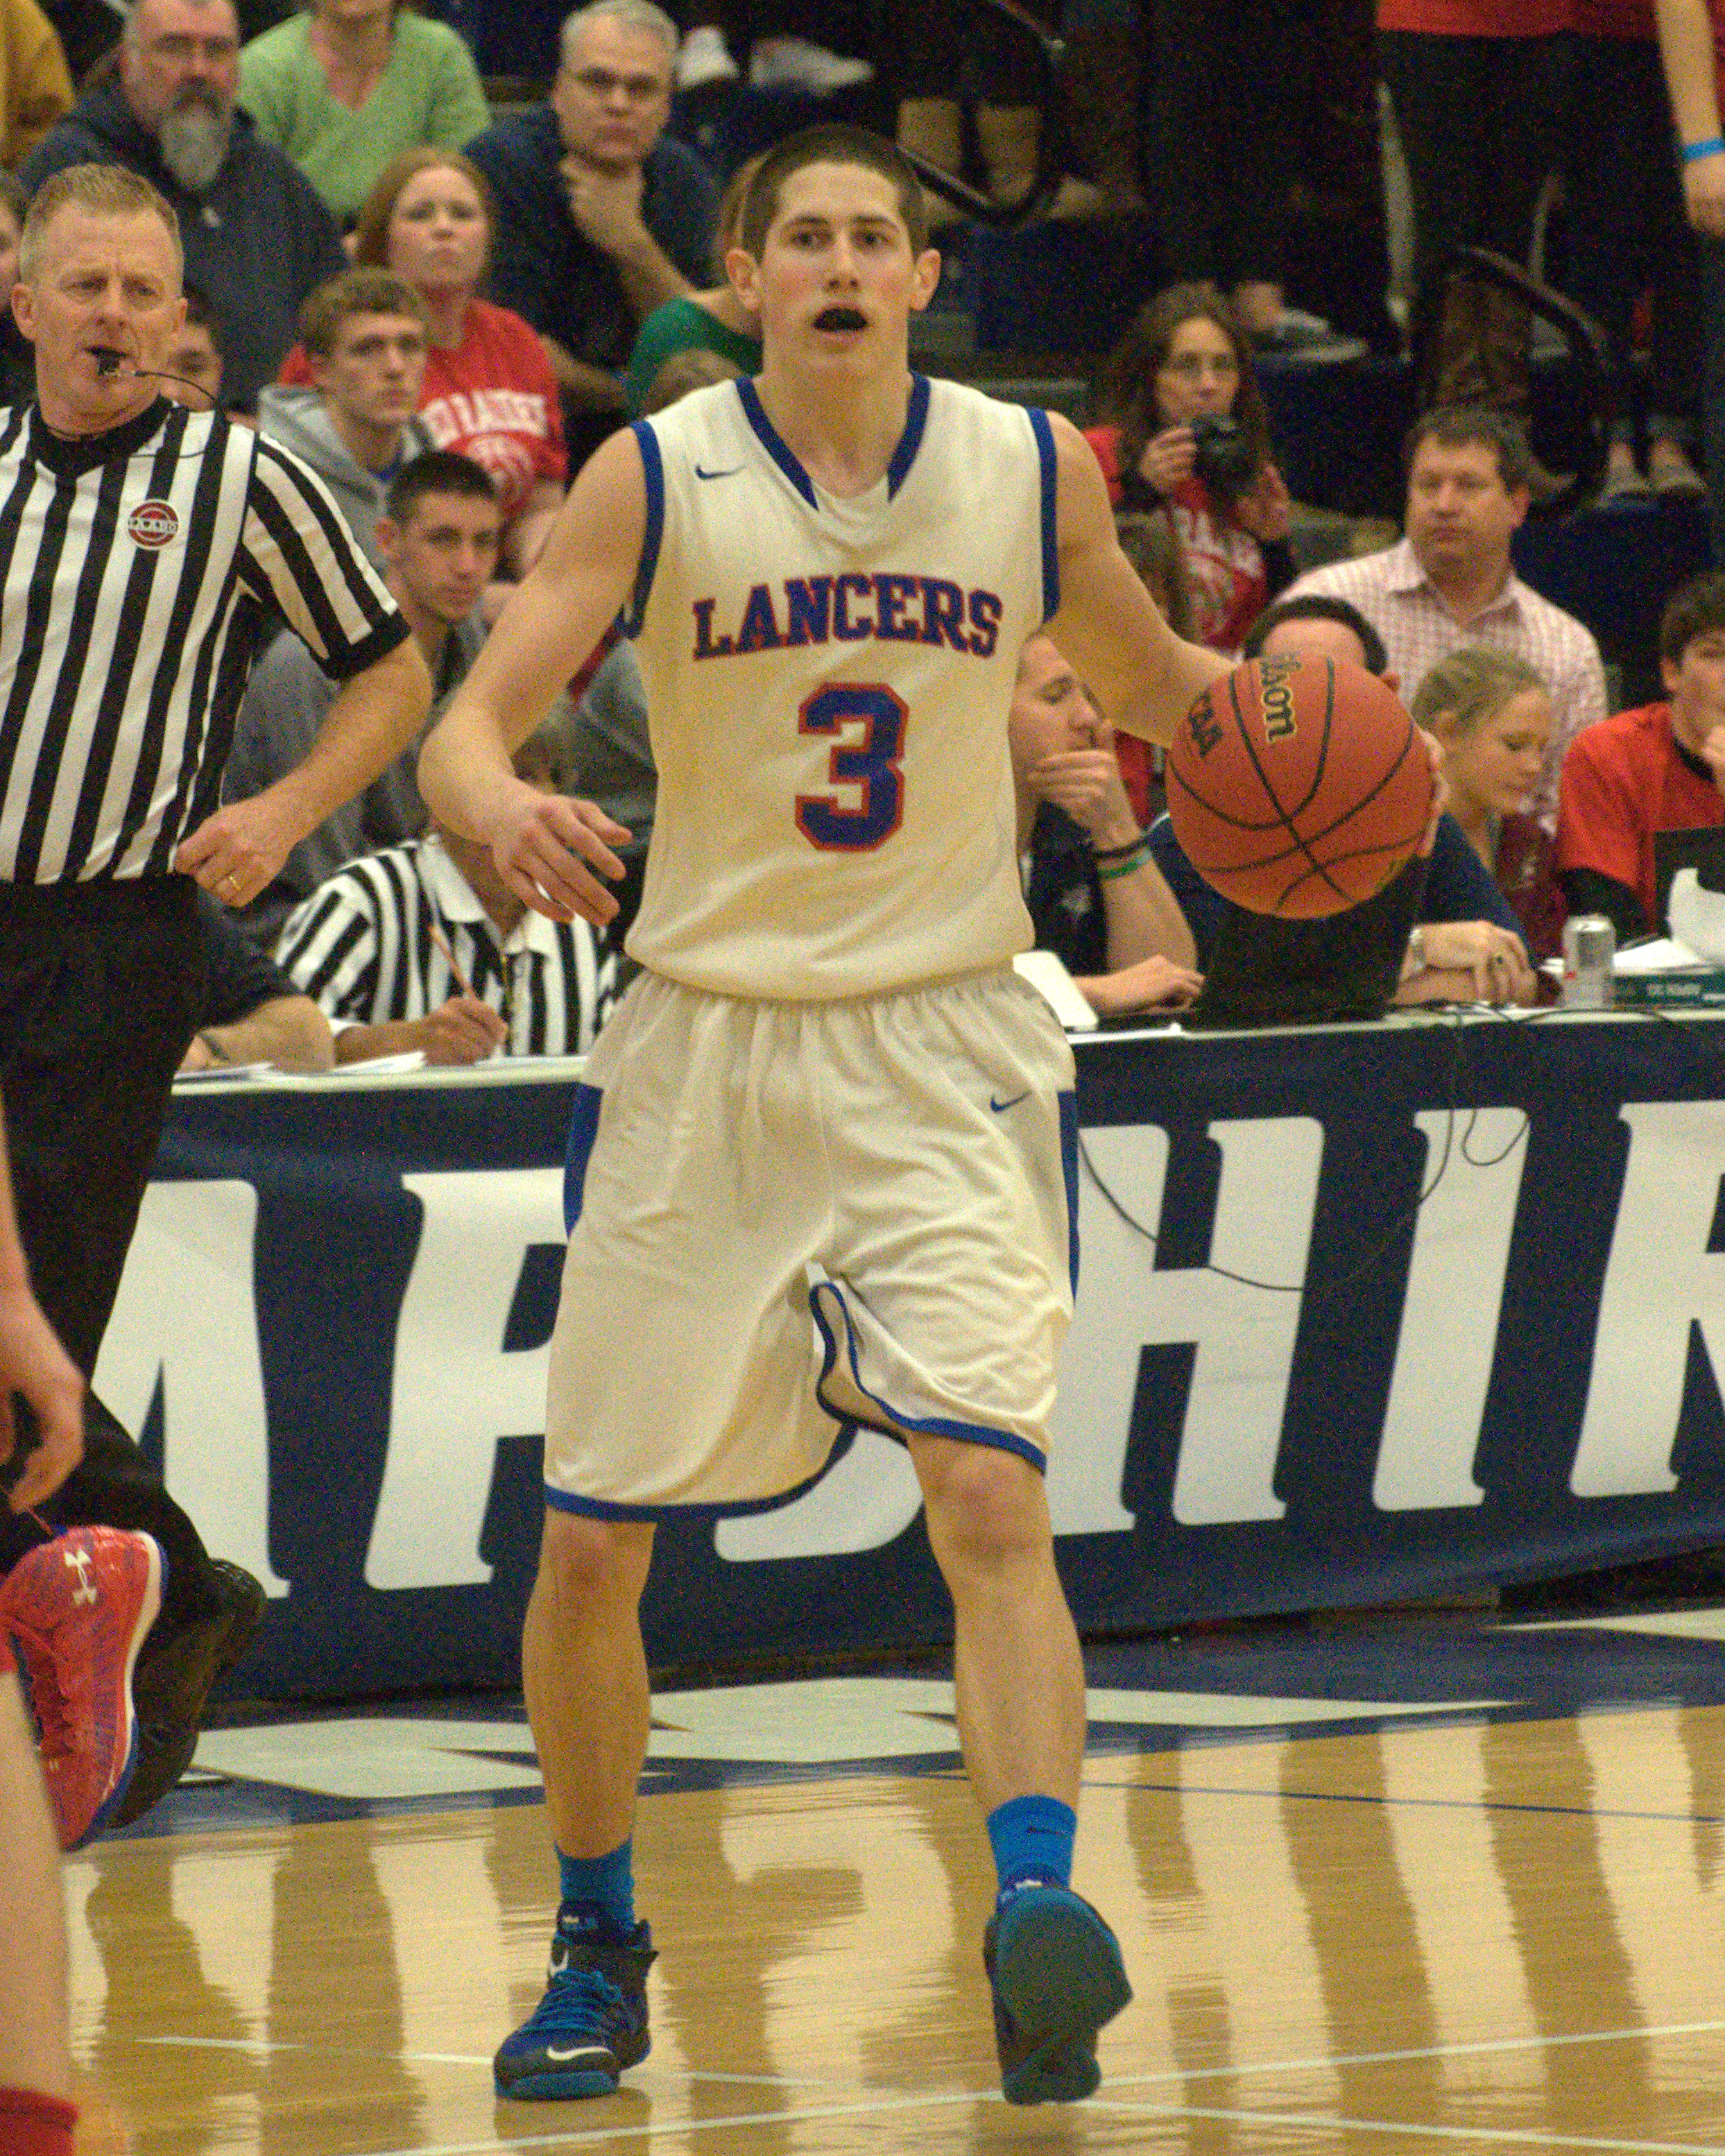 Londonderry's Cody Ball was named the Division I Player of the Year.